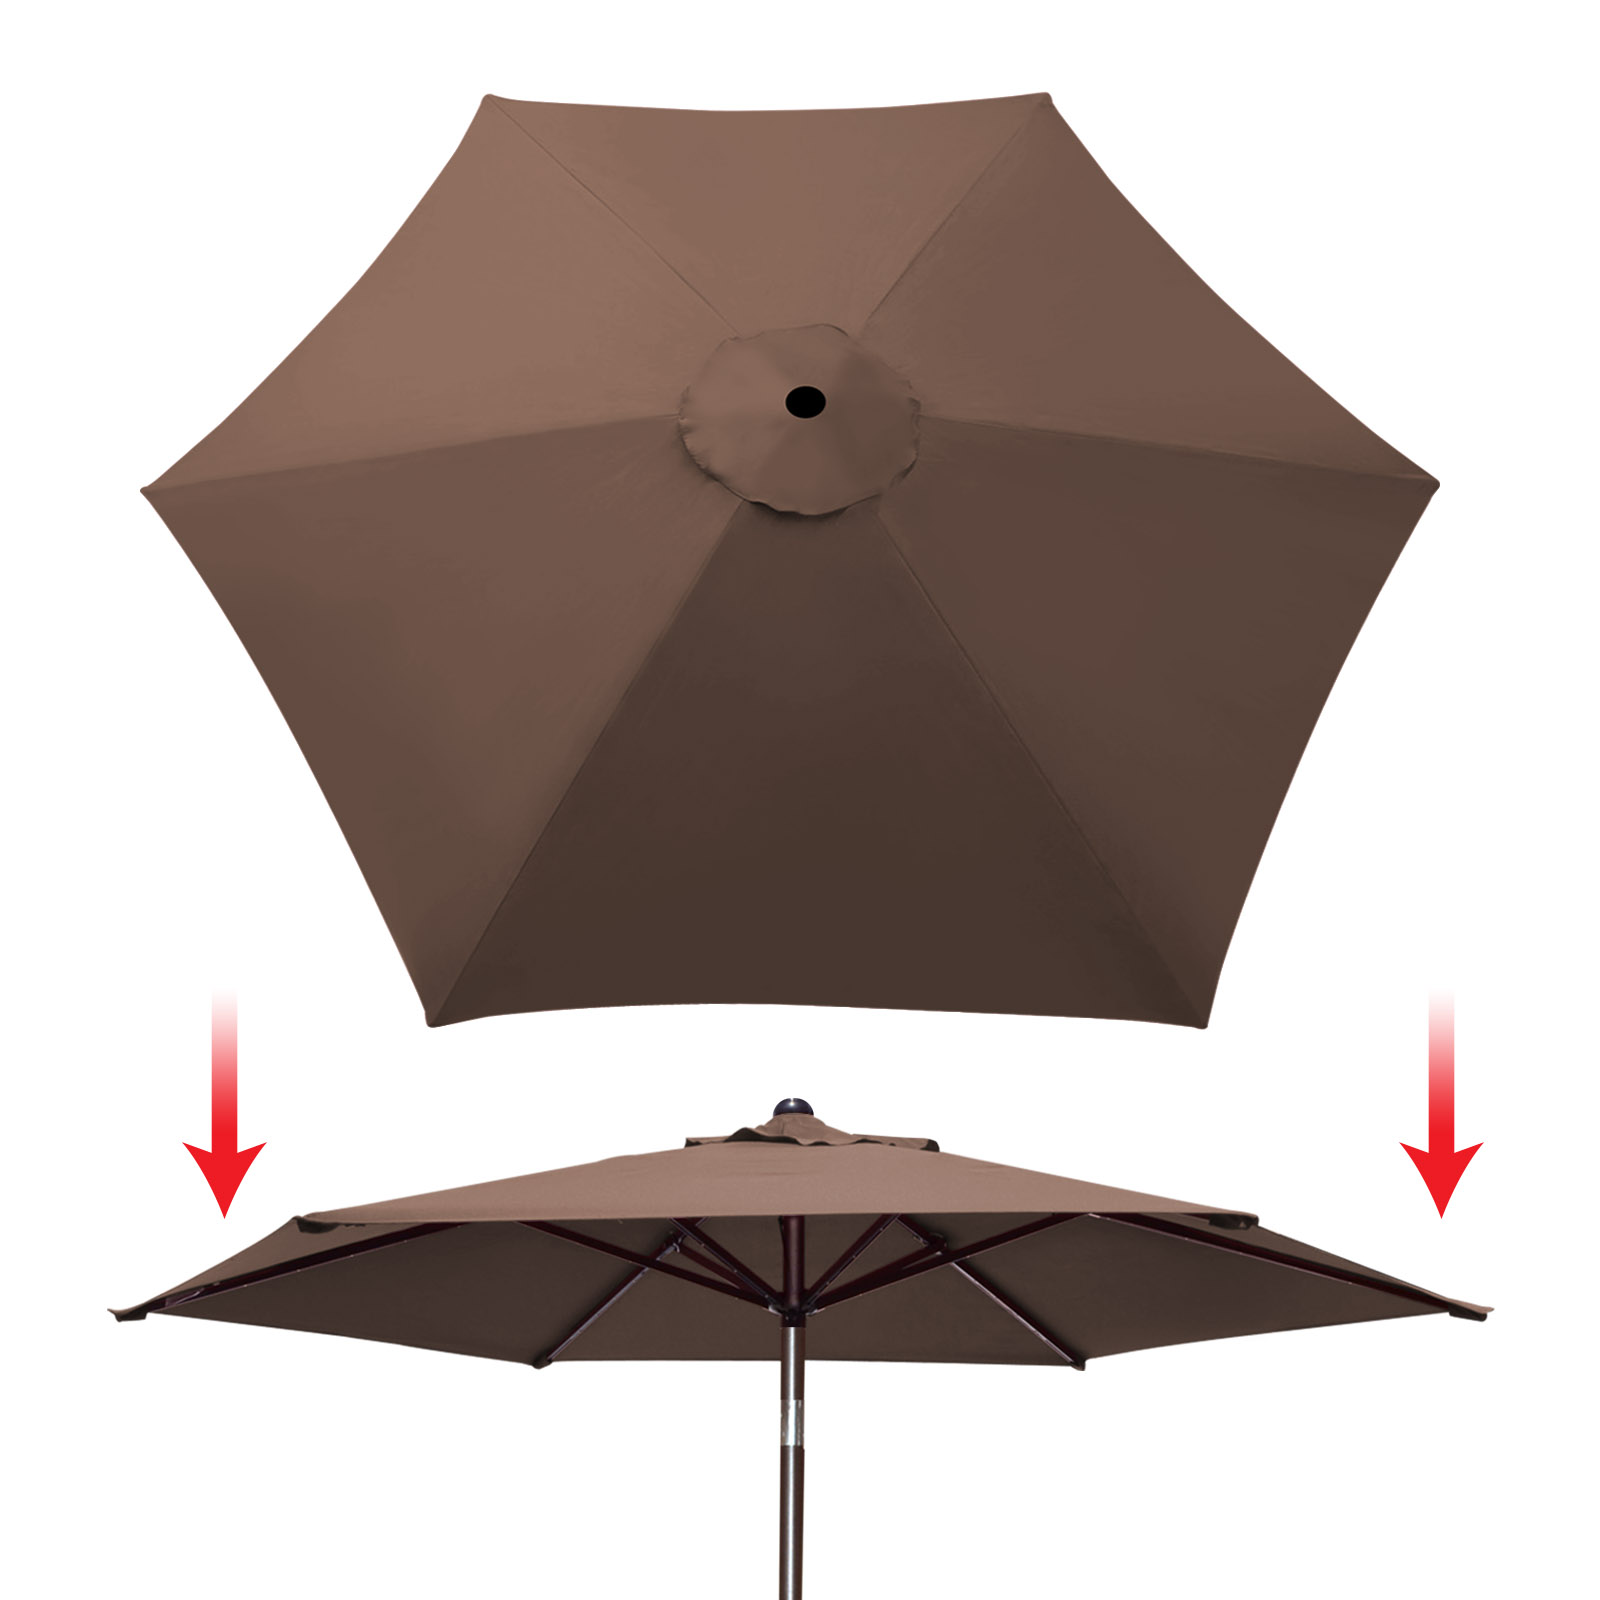 sunrise 9ft 6 ribs outdoor patio umbrella cover canopy replacement cover top brown cover only umbrella frame not included